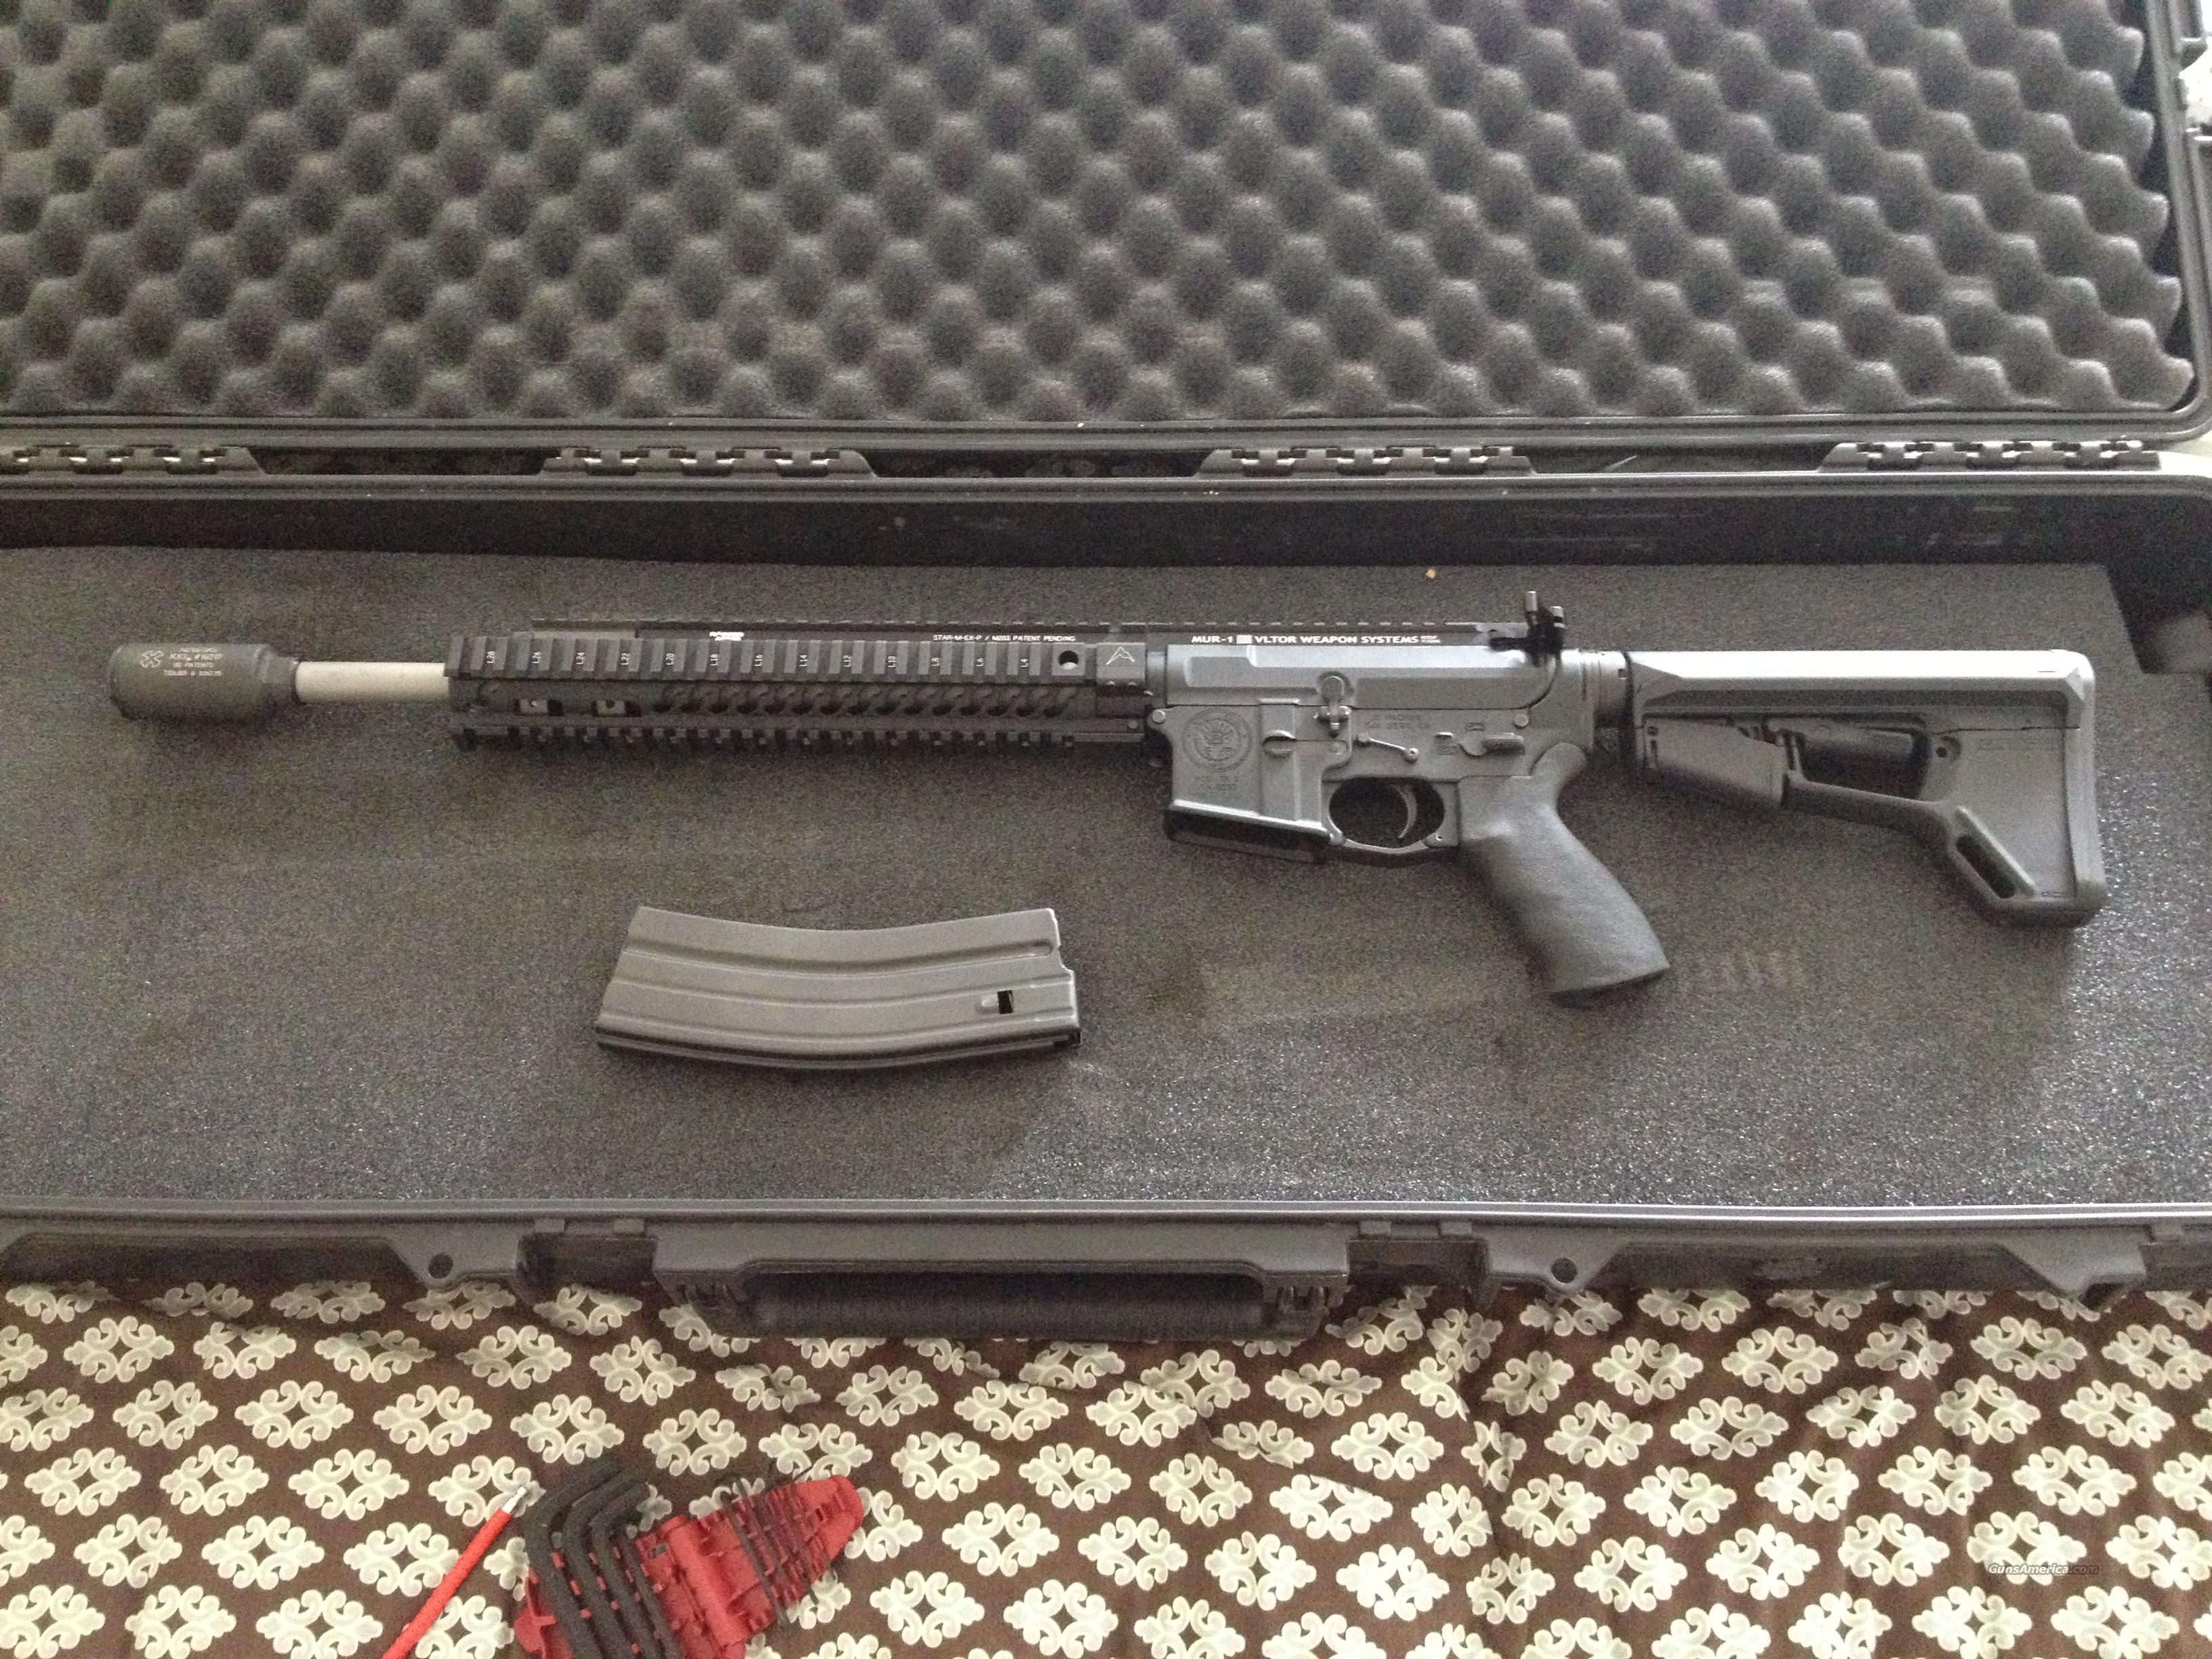 JD Machine Custom AR-15 with adam arms gas piston system  Guns > Rifles > AR-15 Rifles - Small Manufacturers > Complete Rifle